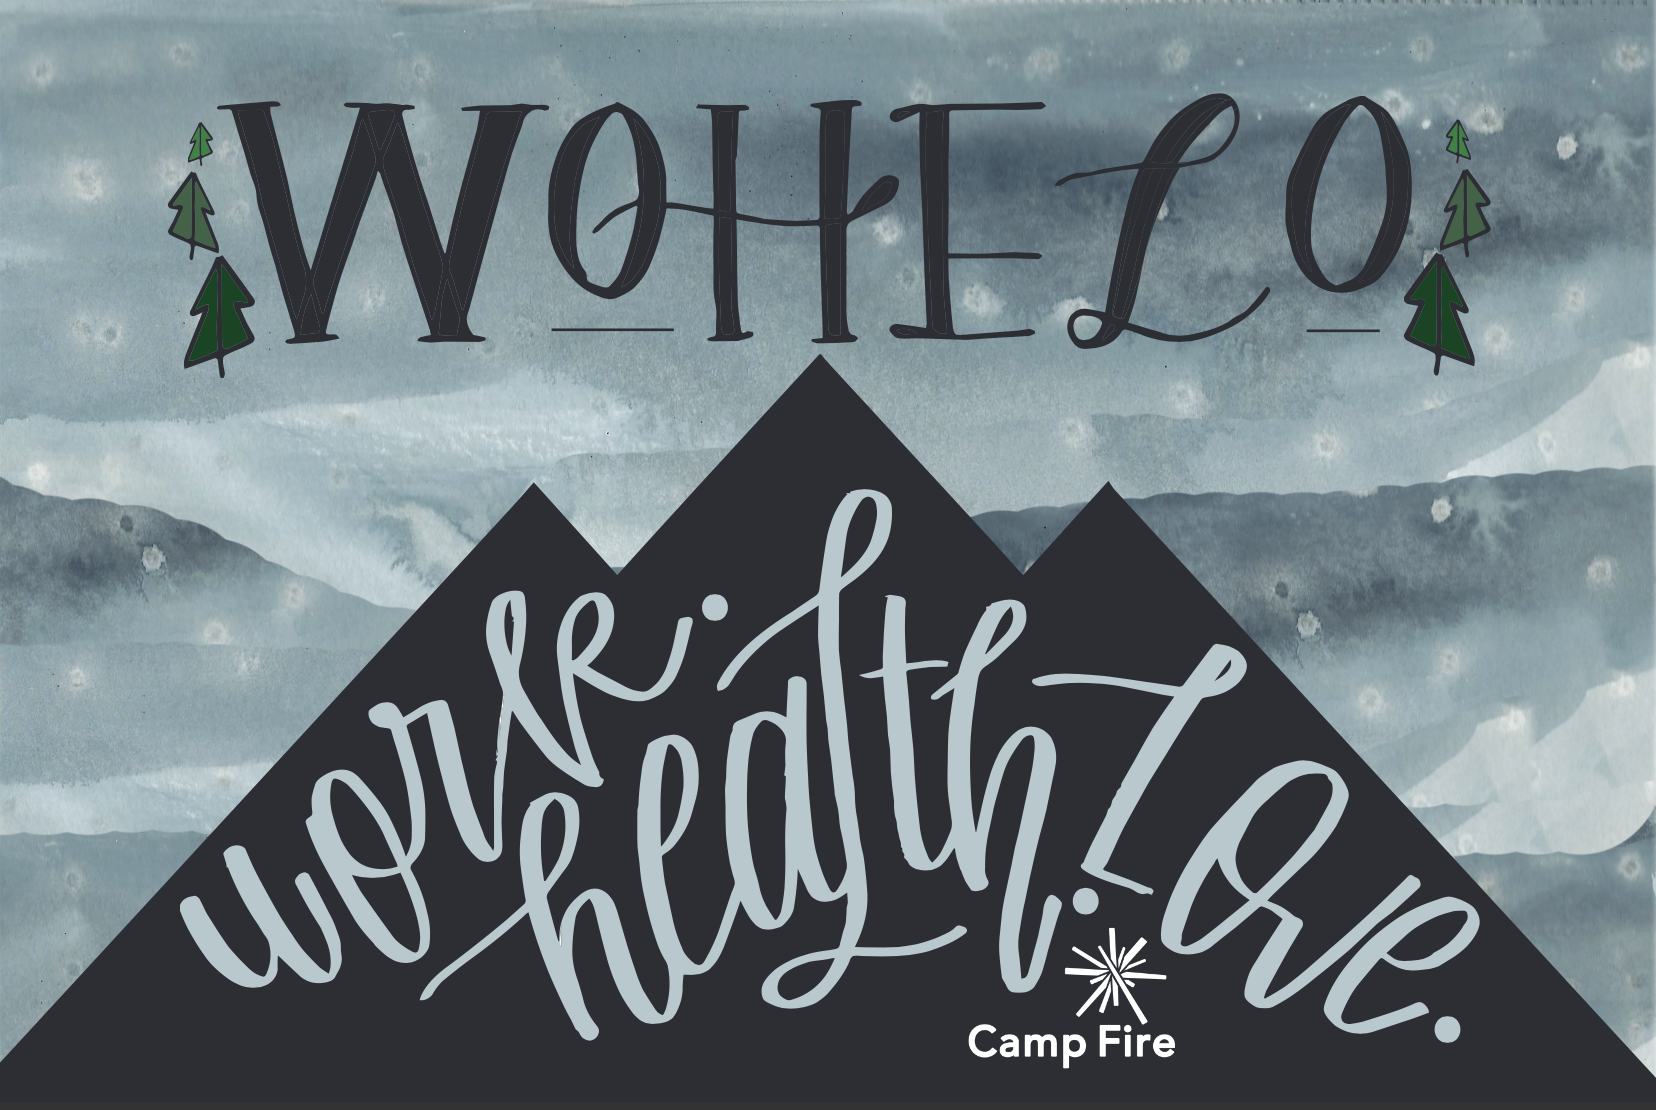 Wohelo Camp Fire watchword Camp Fire girls bluebirds